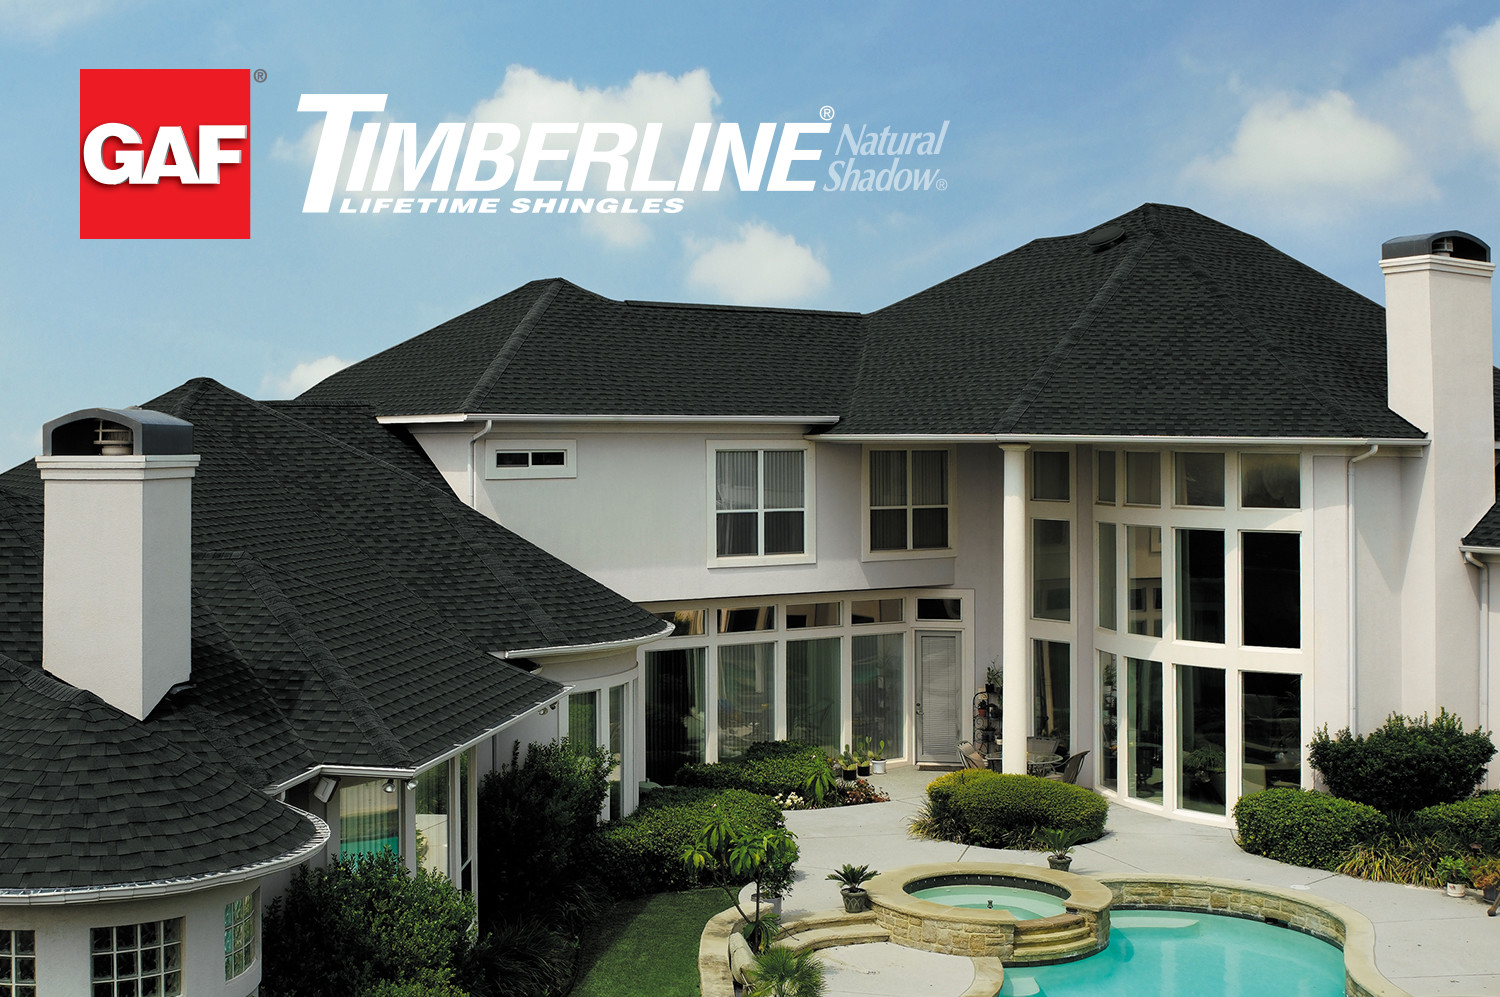 GAF | Timberline Natural Shadow Roofing Shingles